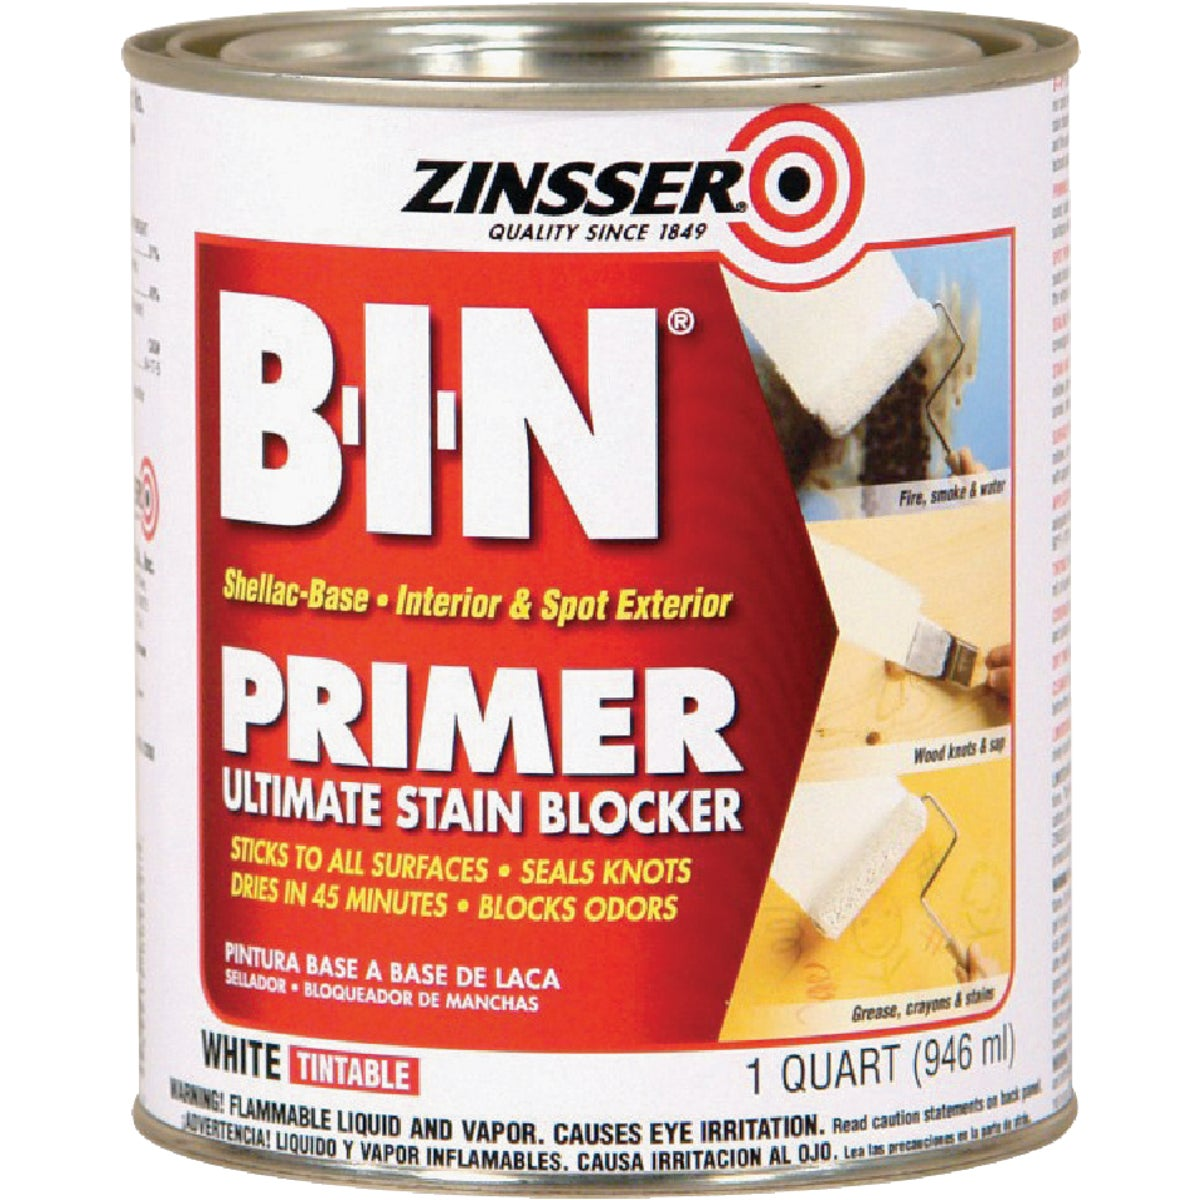 B-I-N INT PRIMER SEALER - 0904 by Rustoleum